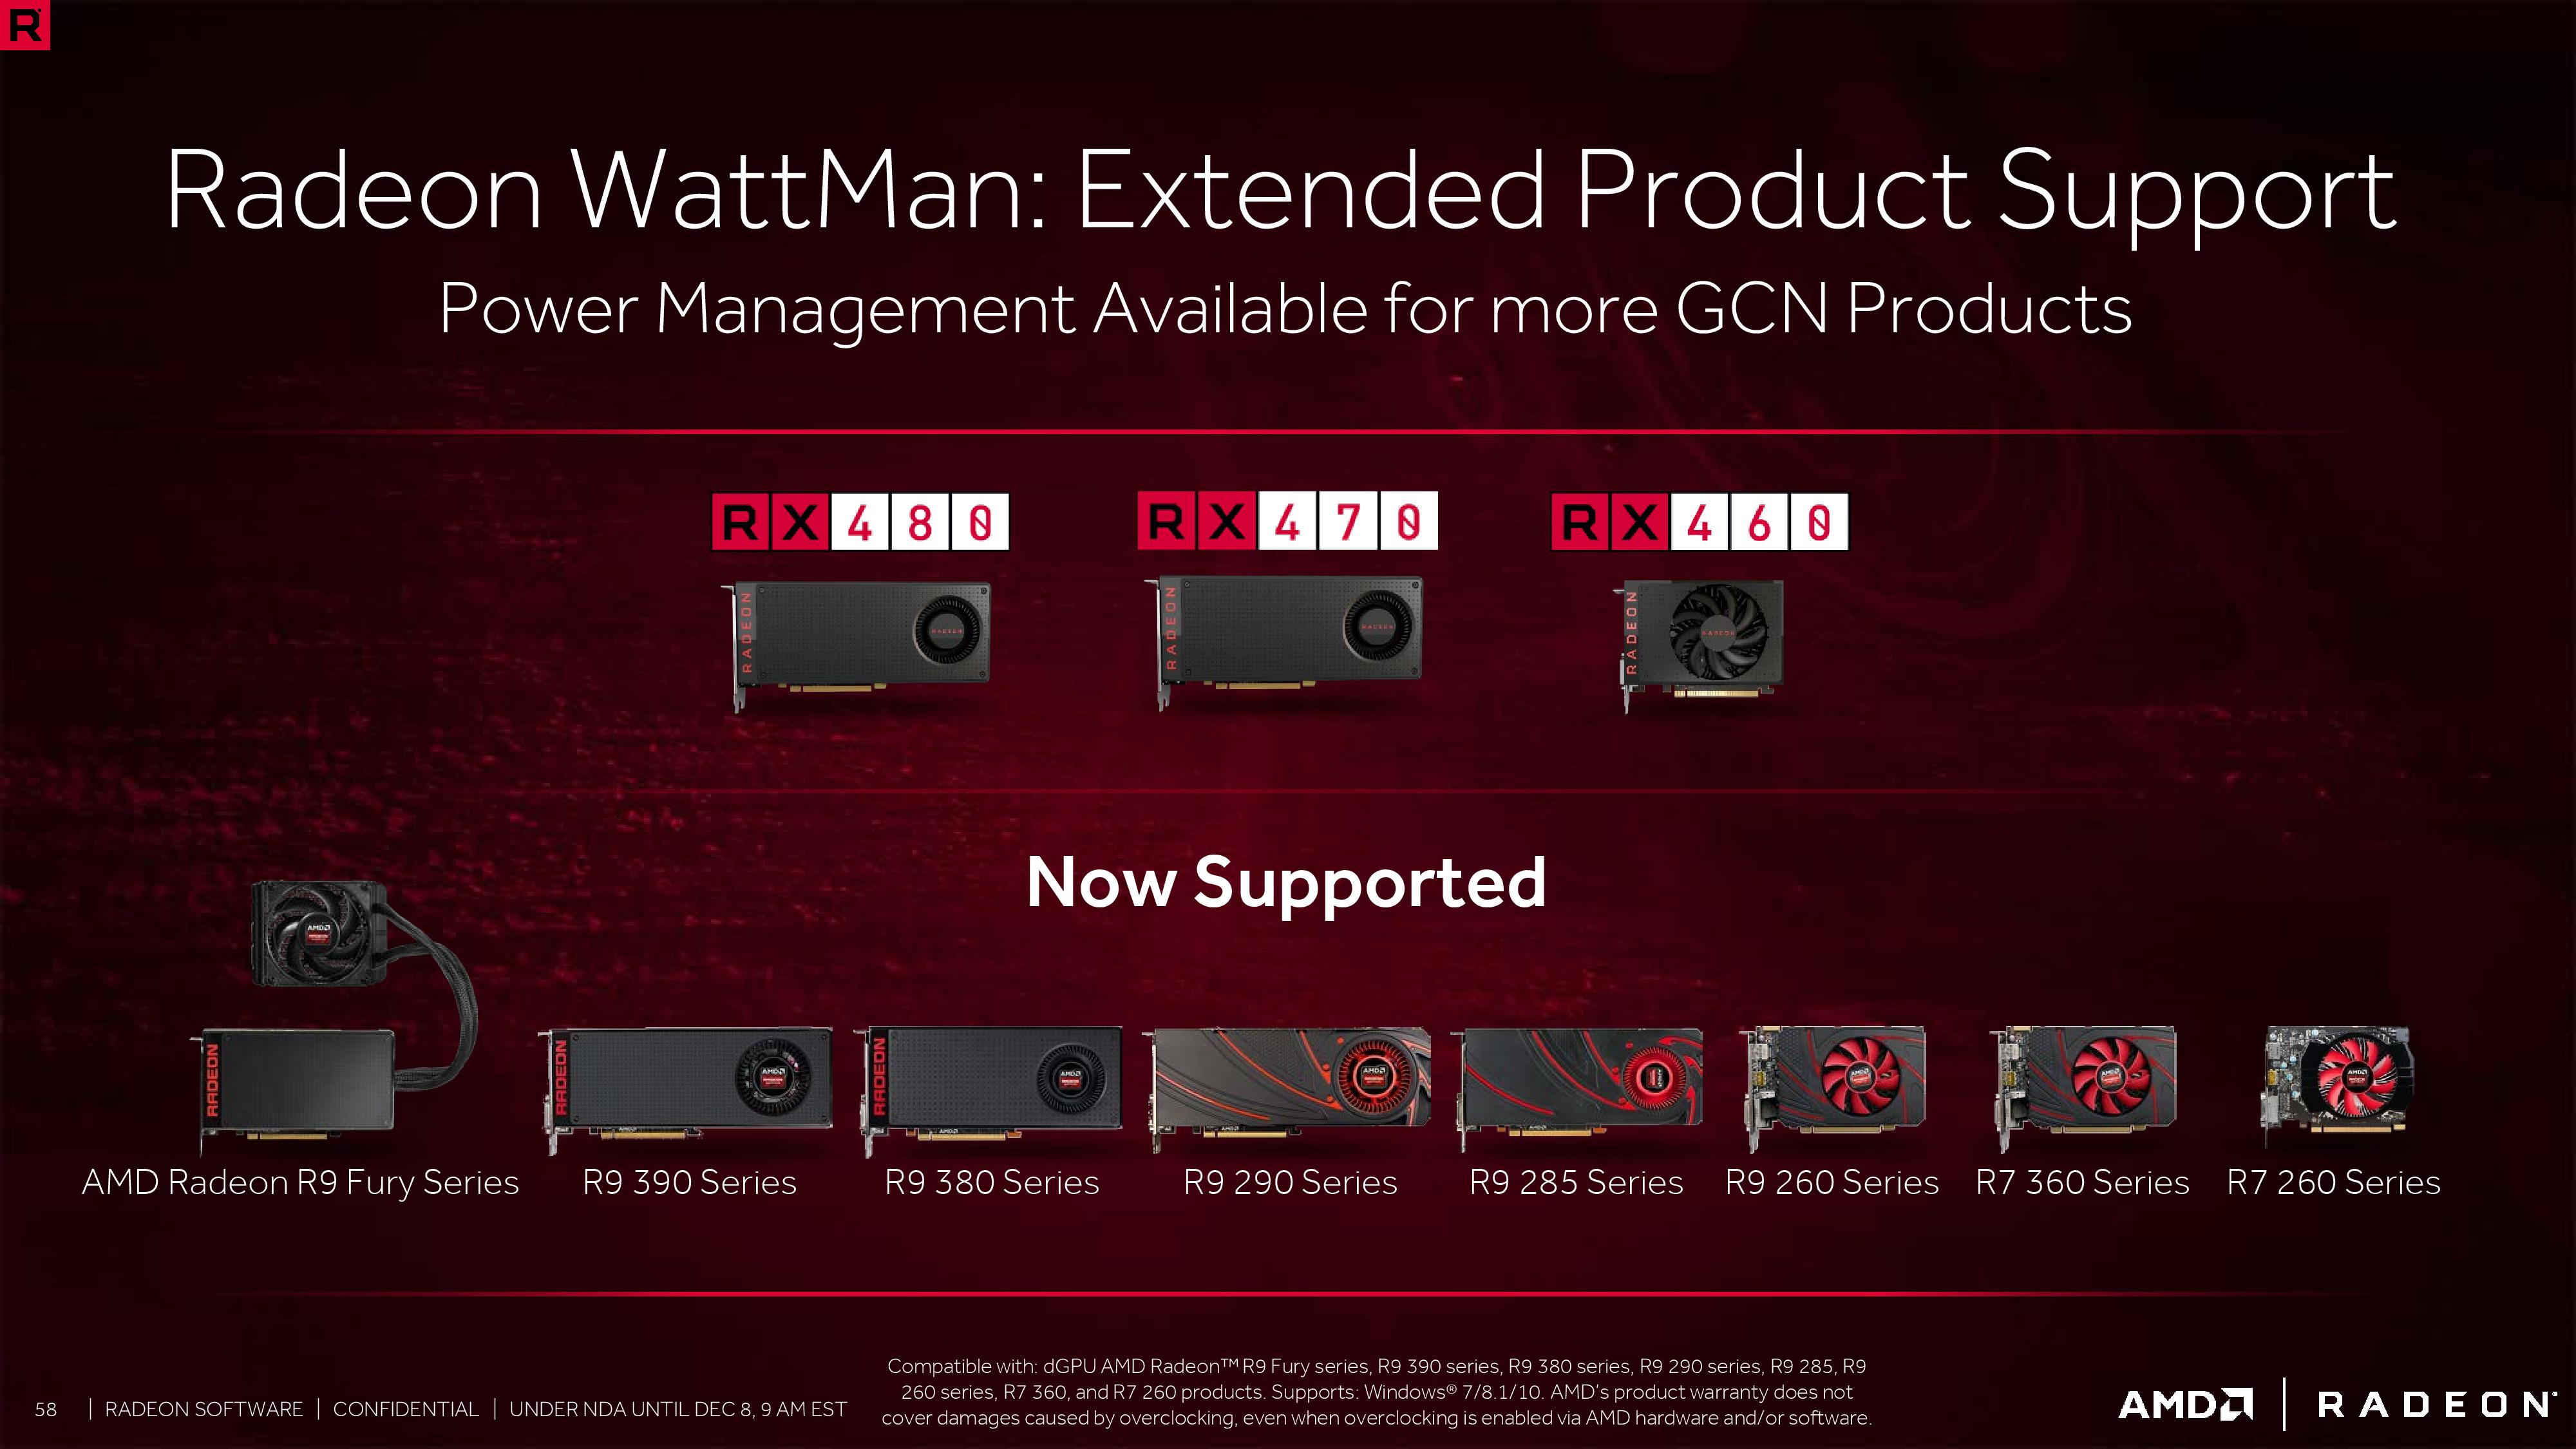 ReLive New Features (3): Radeon Chill, WattMan Extended